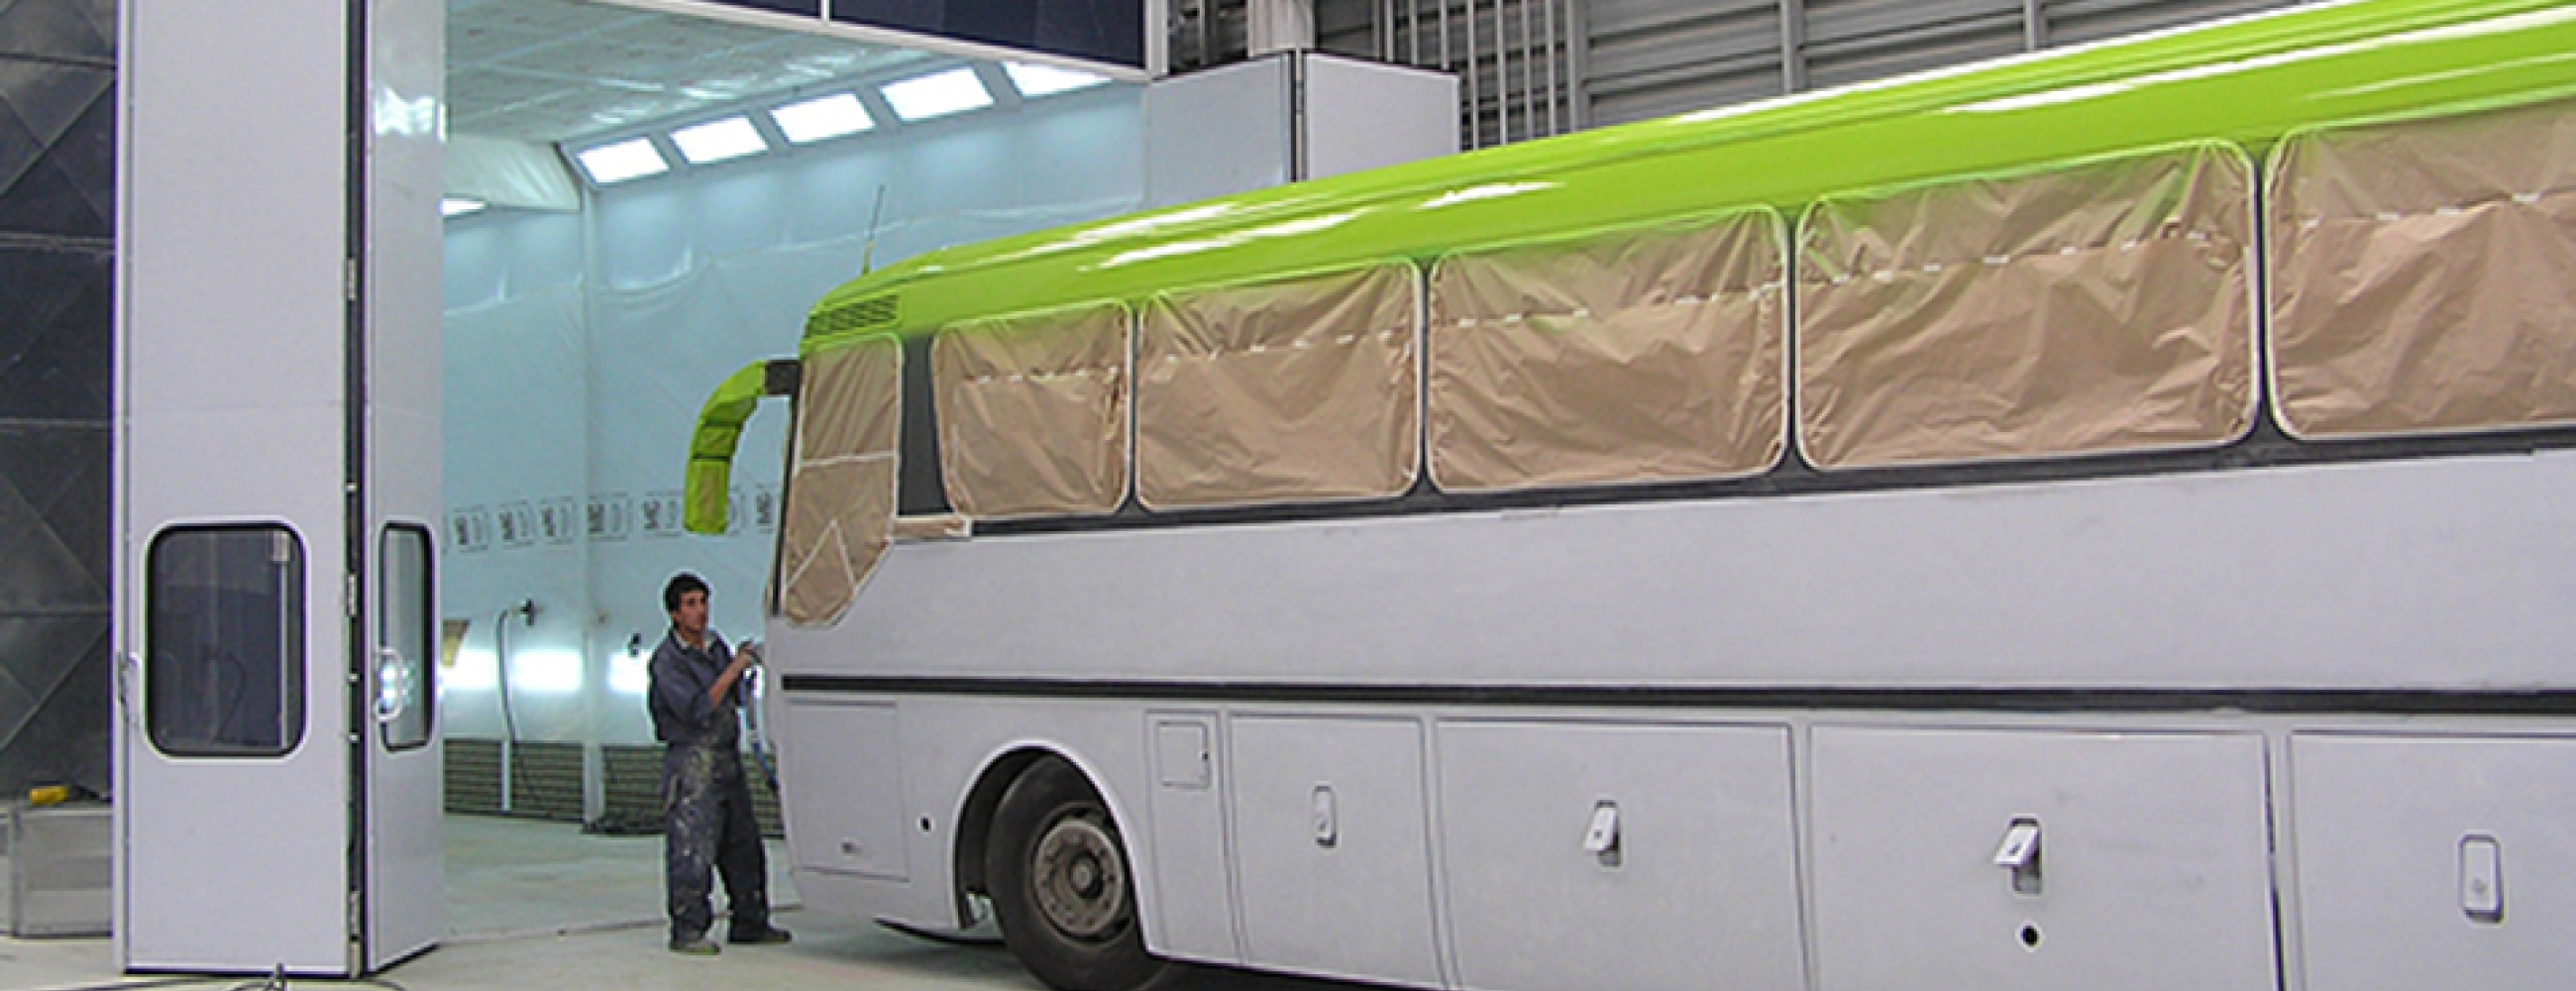 Accudraft TX Truck Paint Booth for Busses. Fleet Refinishing. Coating Application